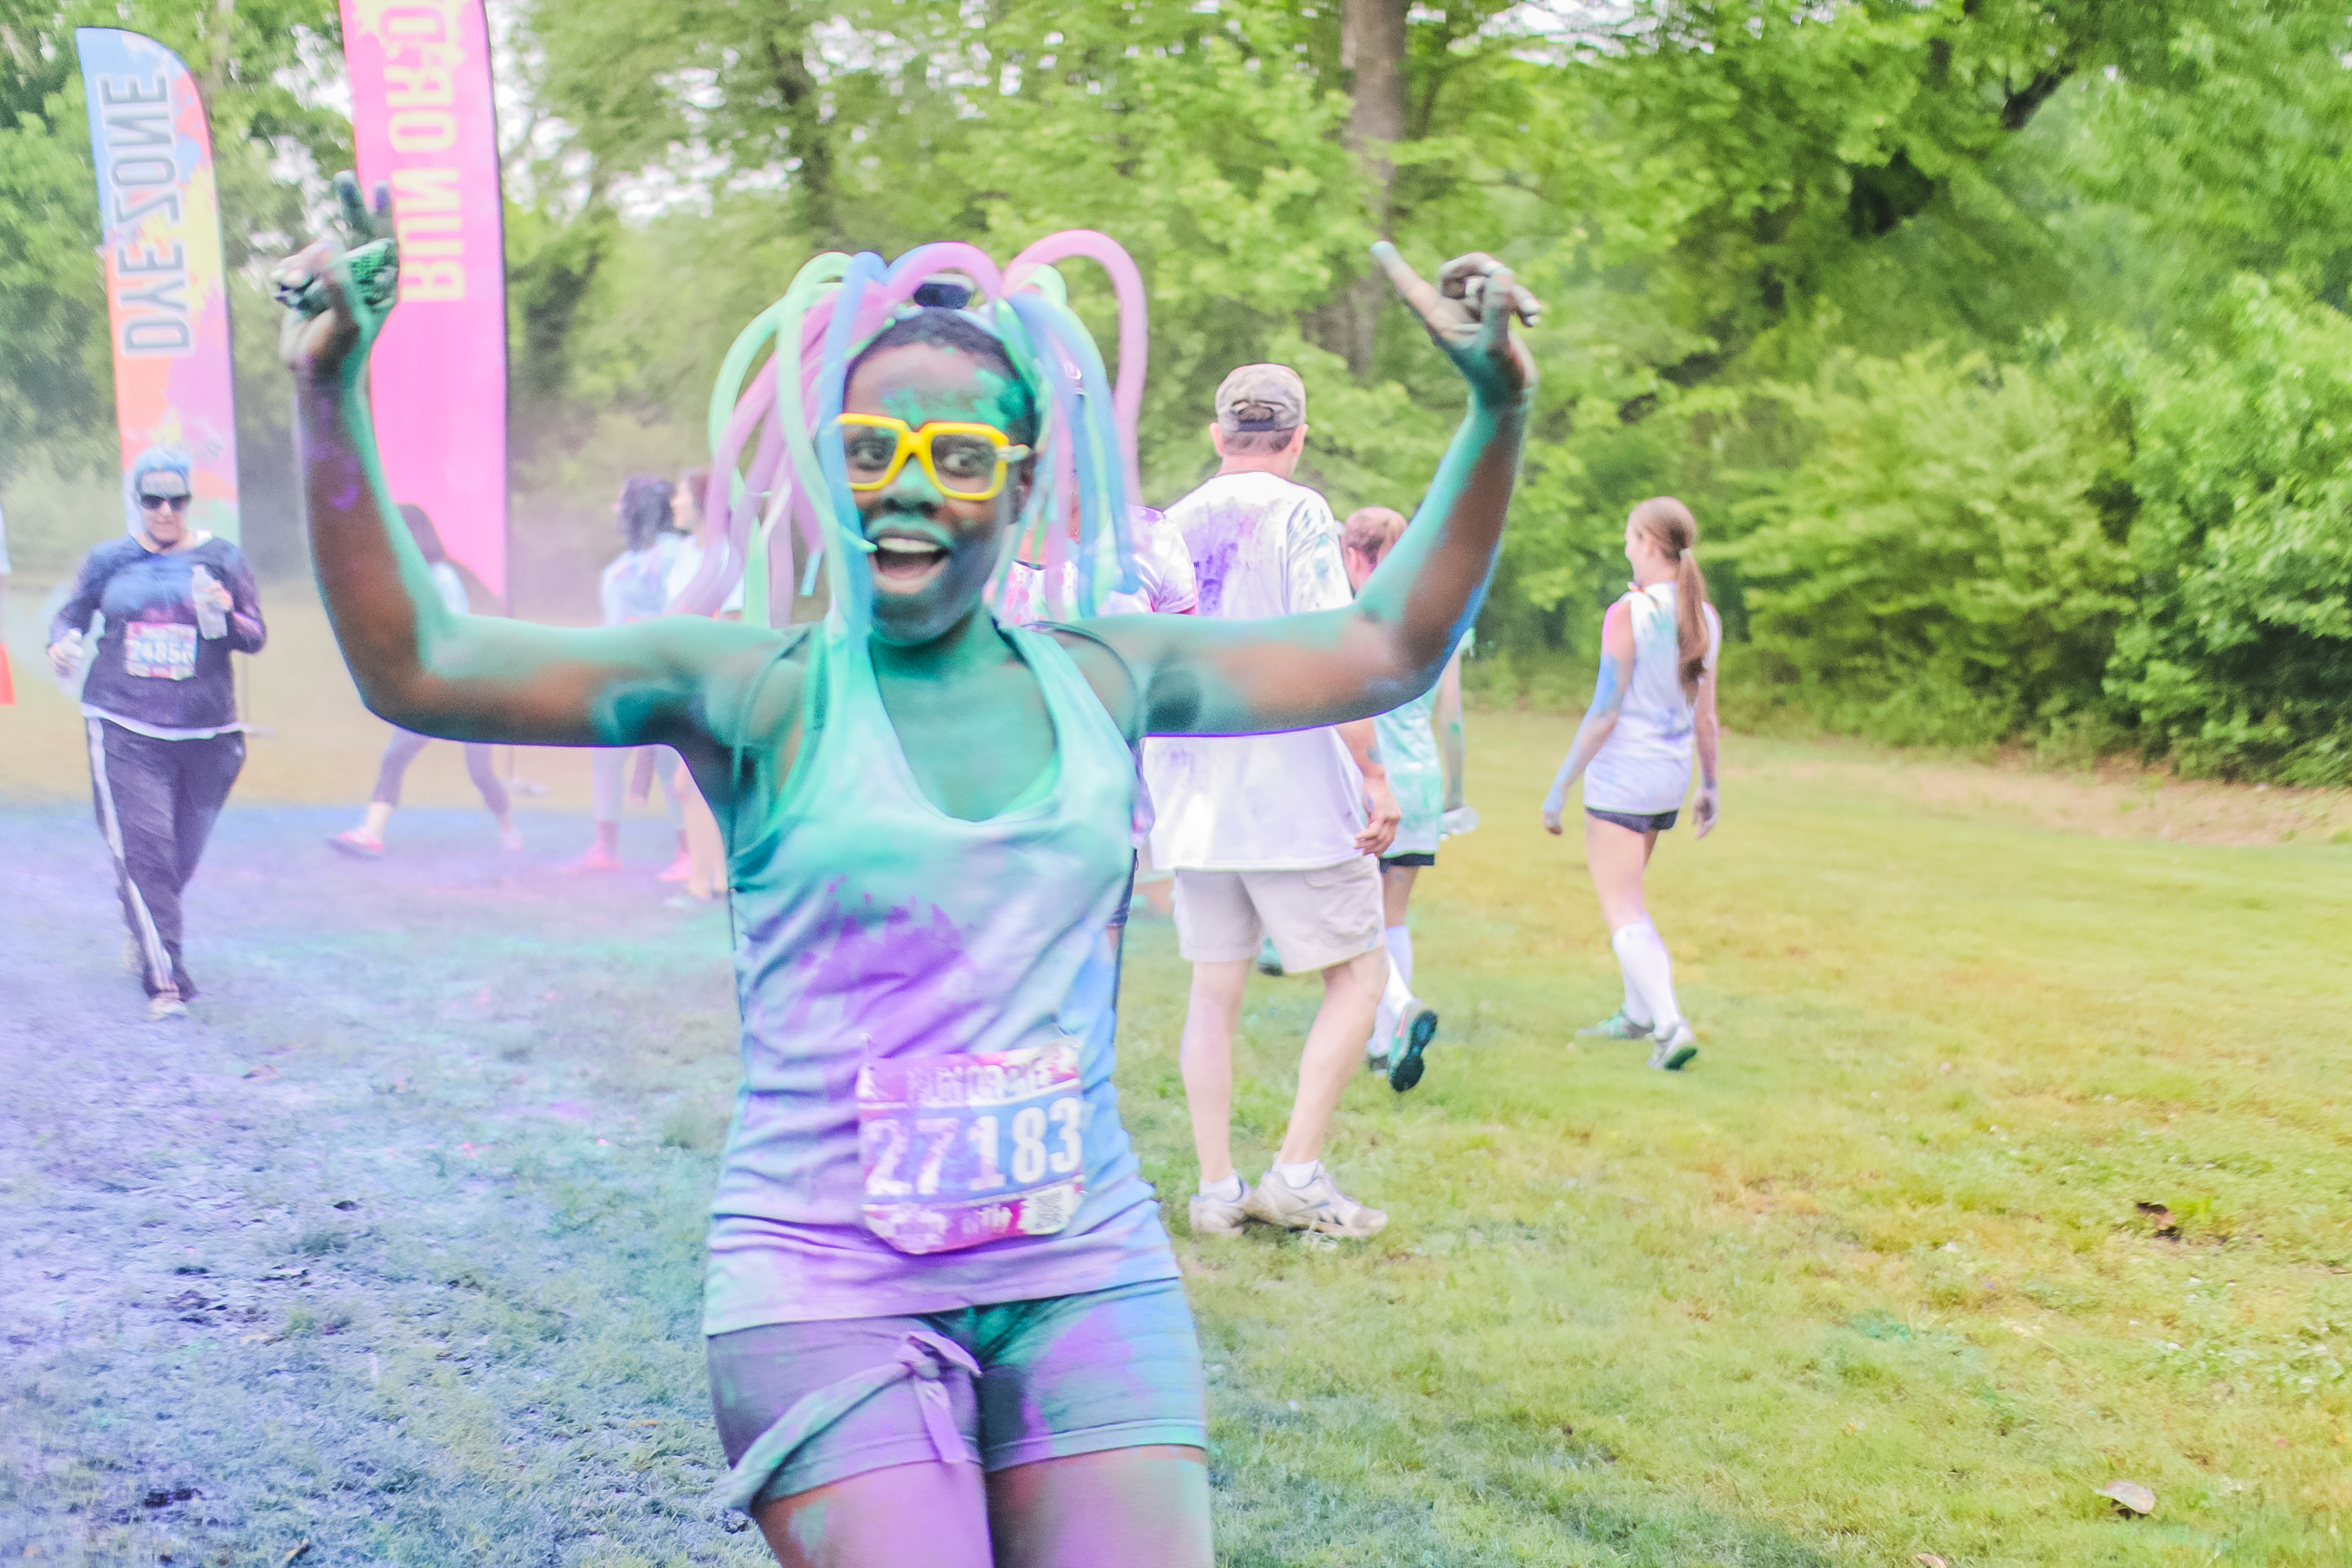 omb-photography-run-or-dye-122